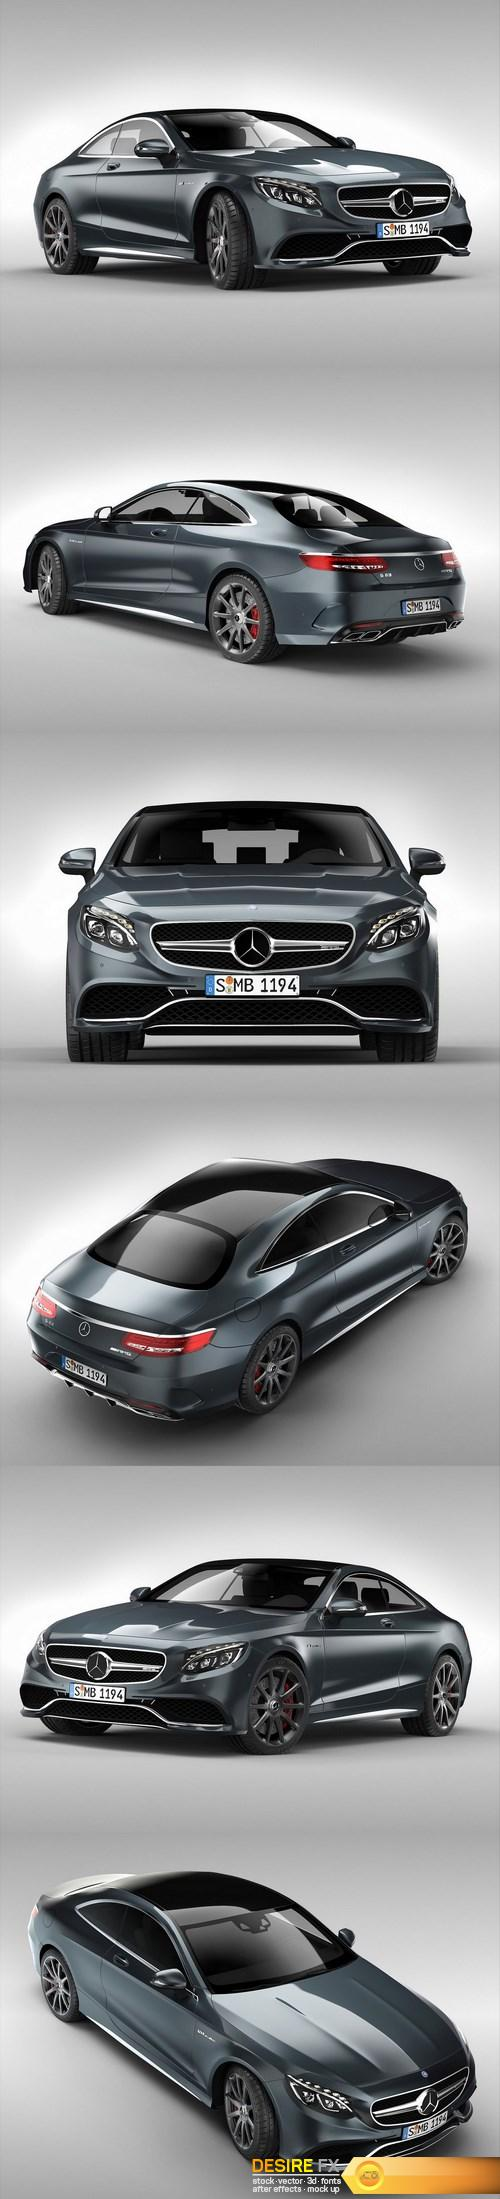 3d-models - Mercedes Benz S63 AMG Coupe 2015 3D Model